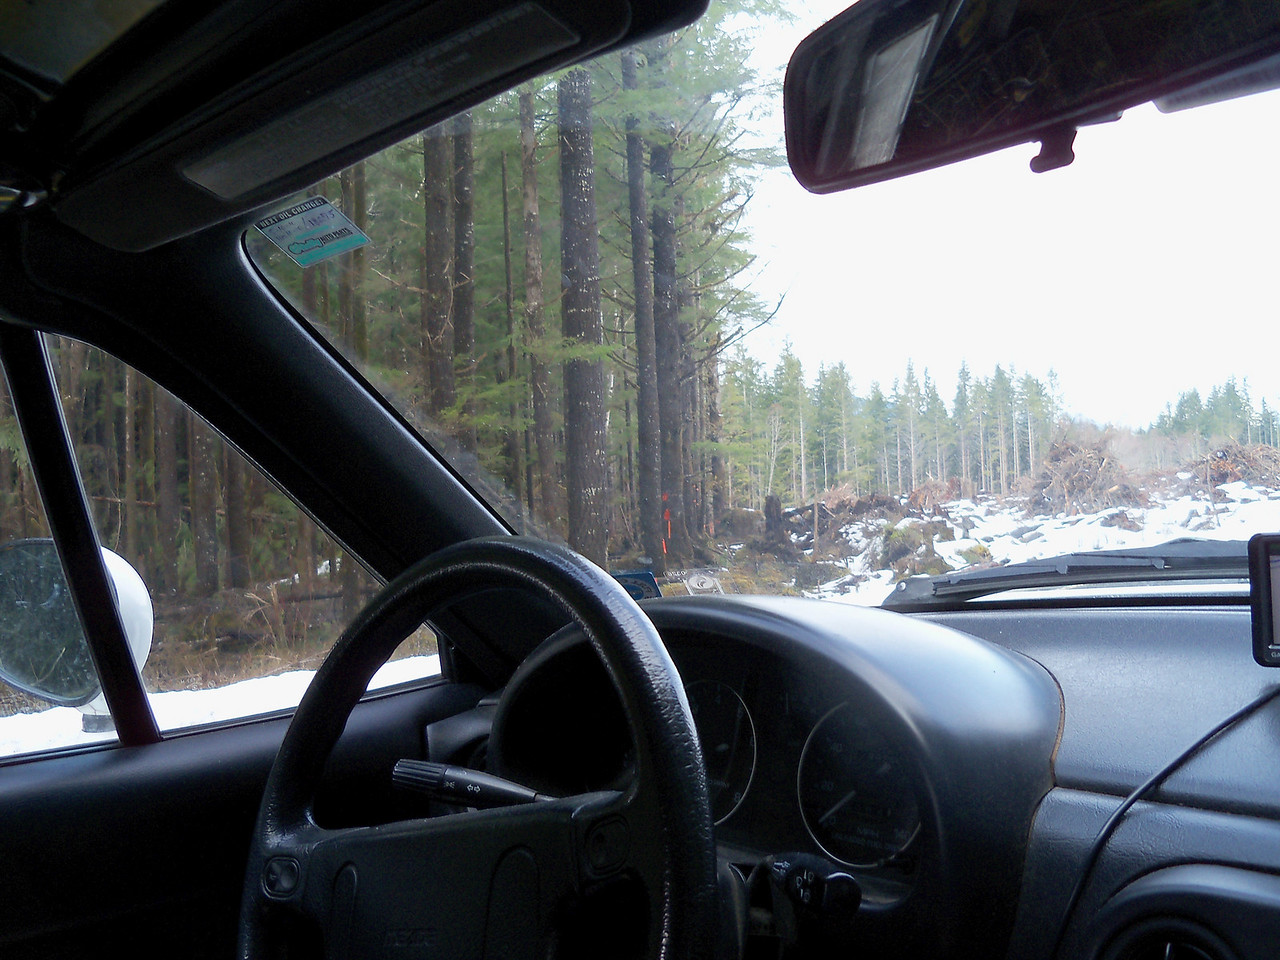 Sunday before the Polar Bear, on the way to Lake Wynoochee in our '90 Miata...